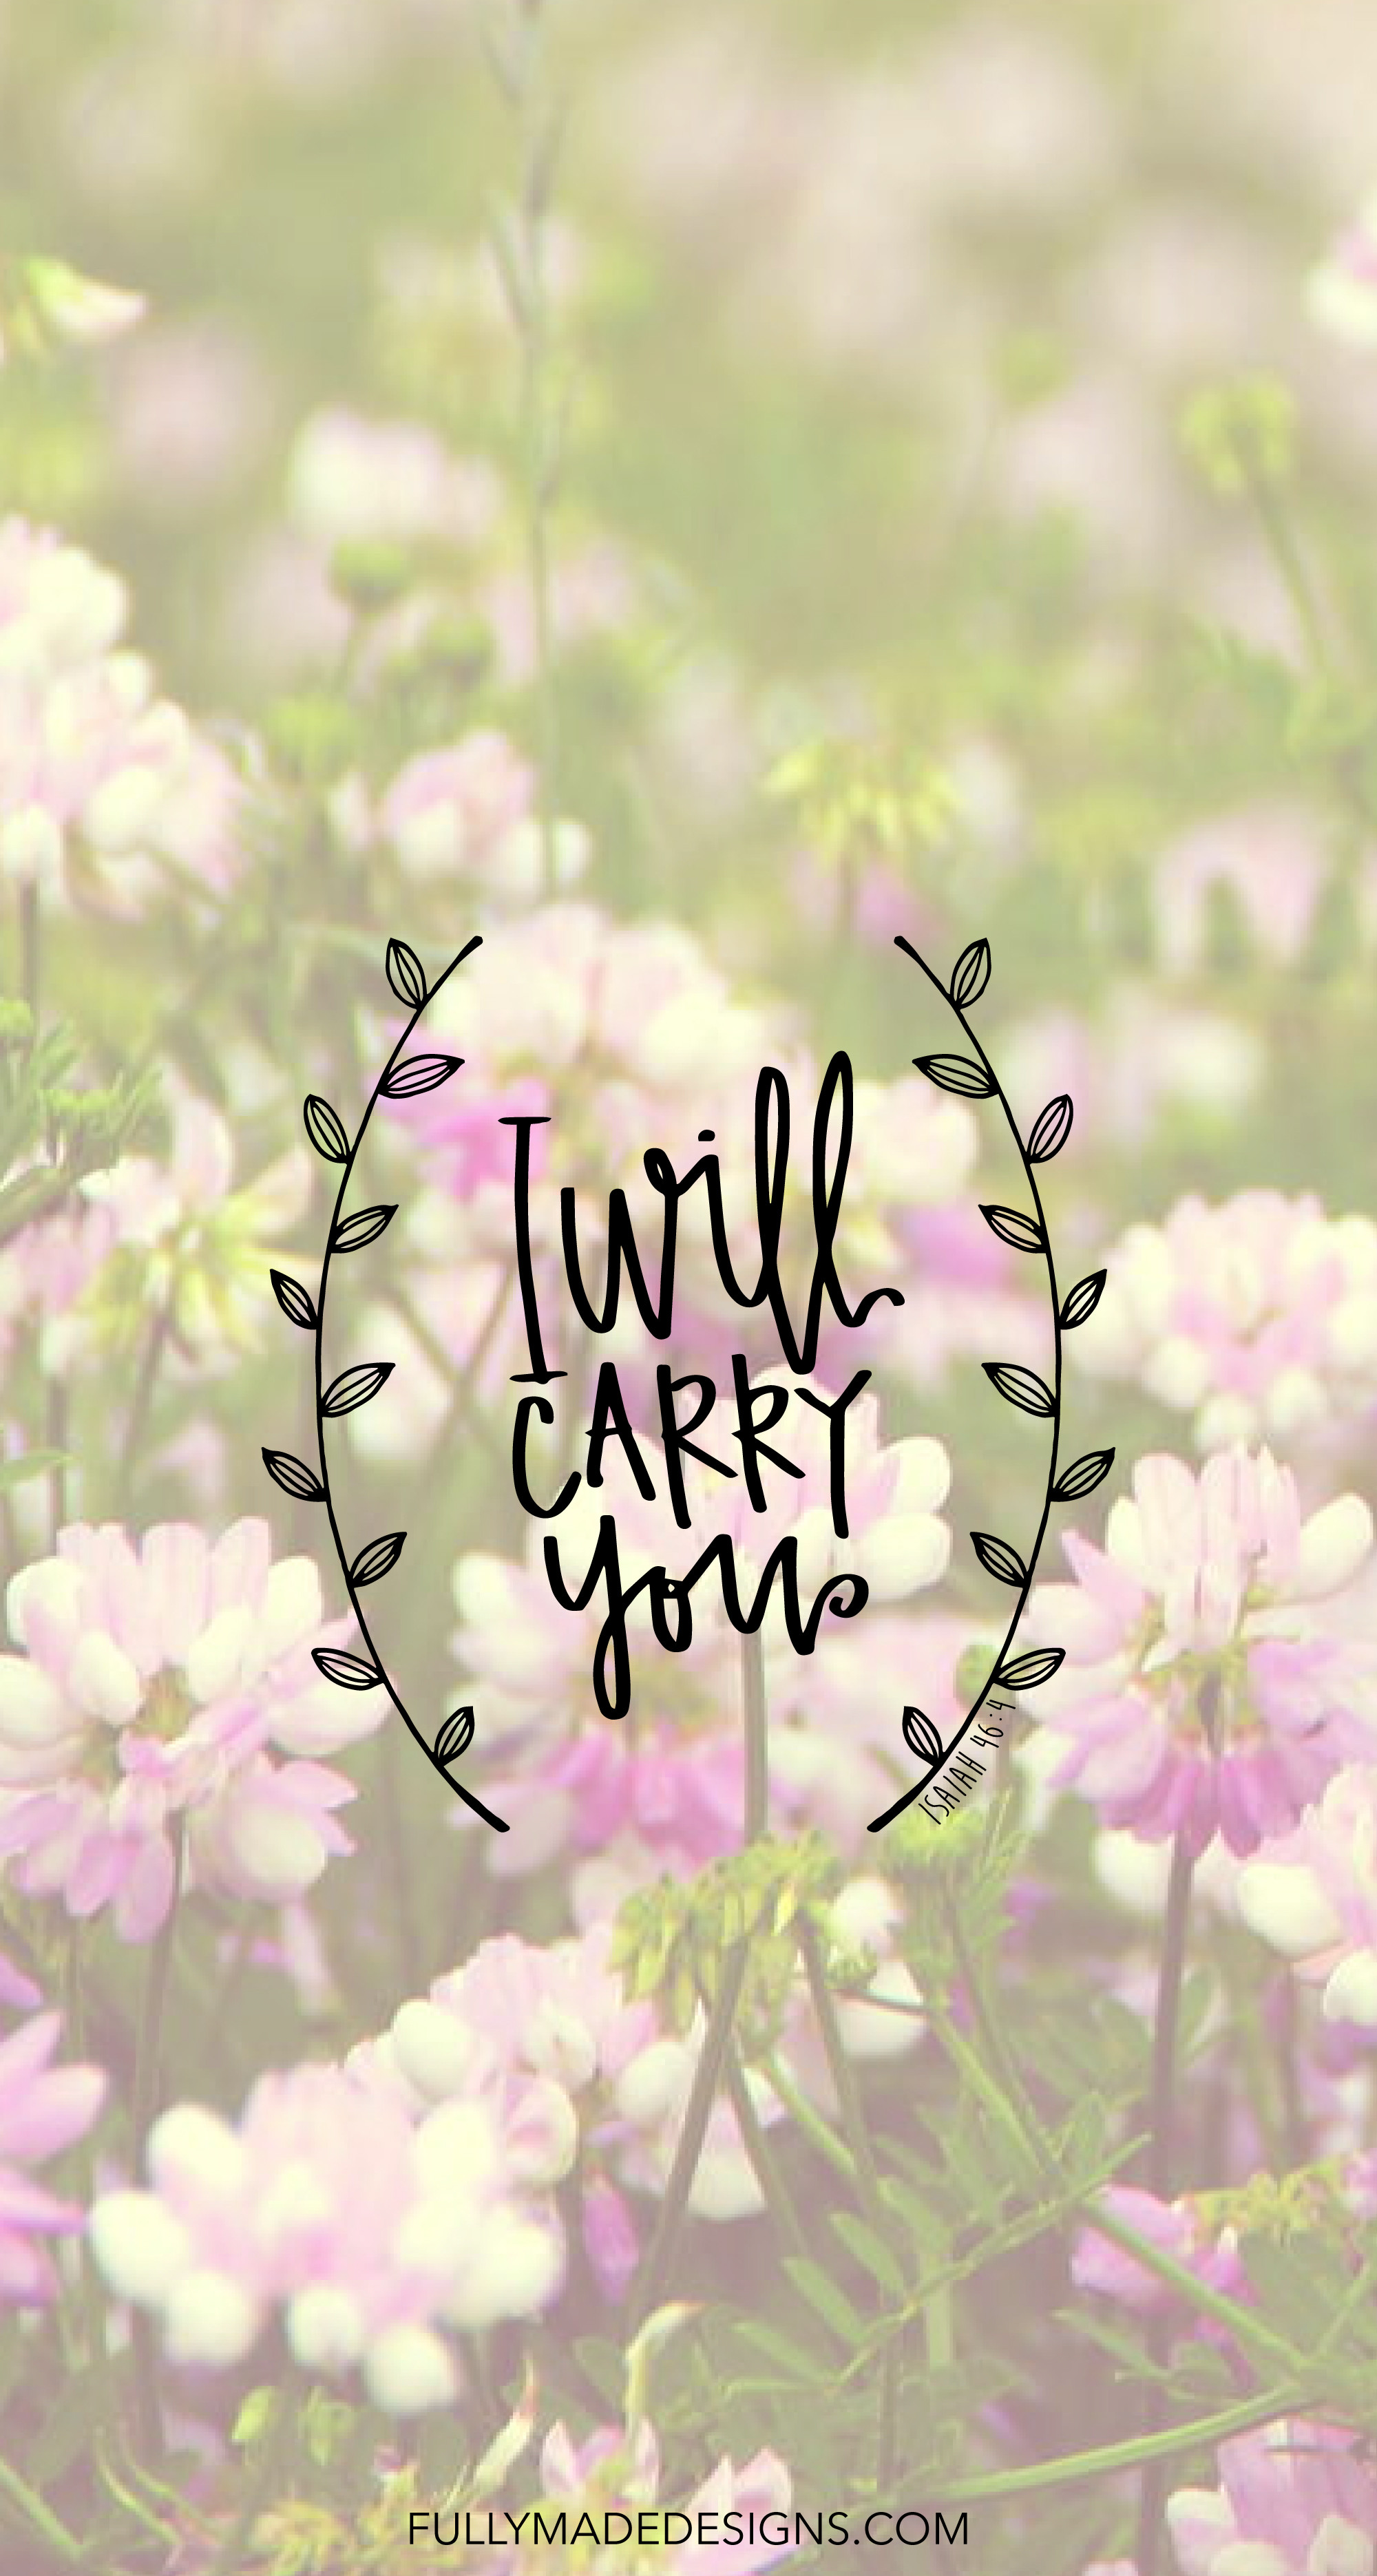 2000x3742 FREE iphone wallpaper - I Will Carry You - Isaiah 46:4 || fullymadedesigns